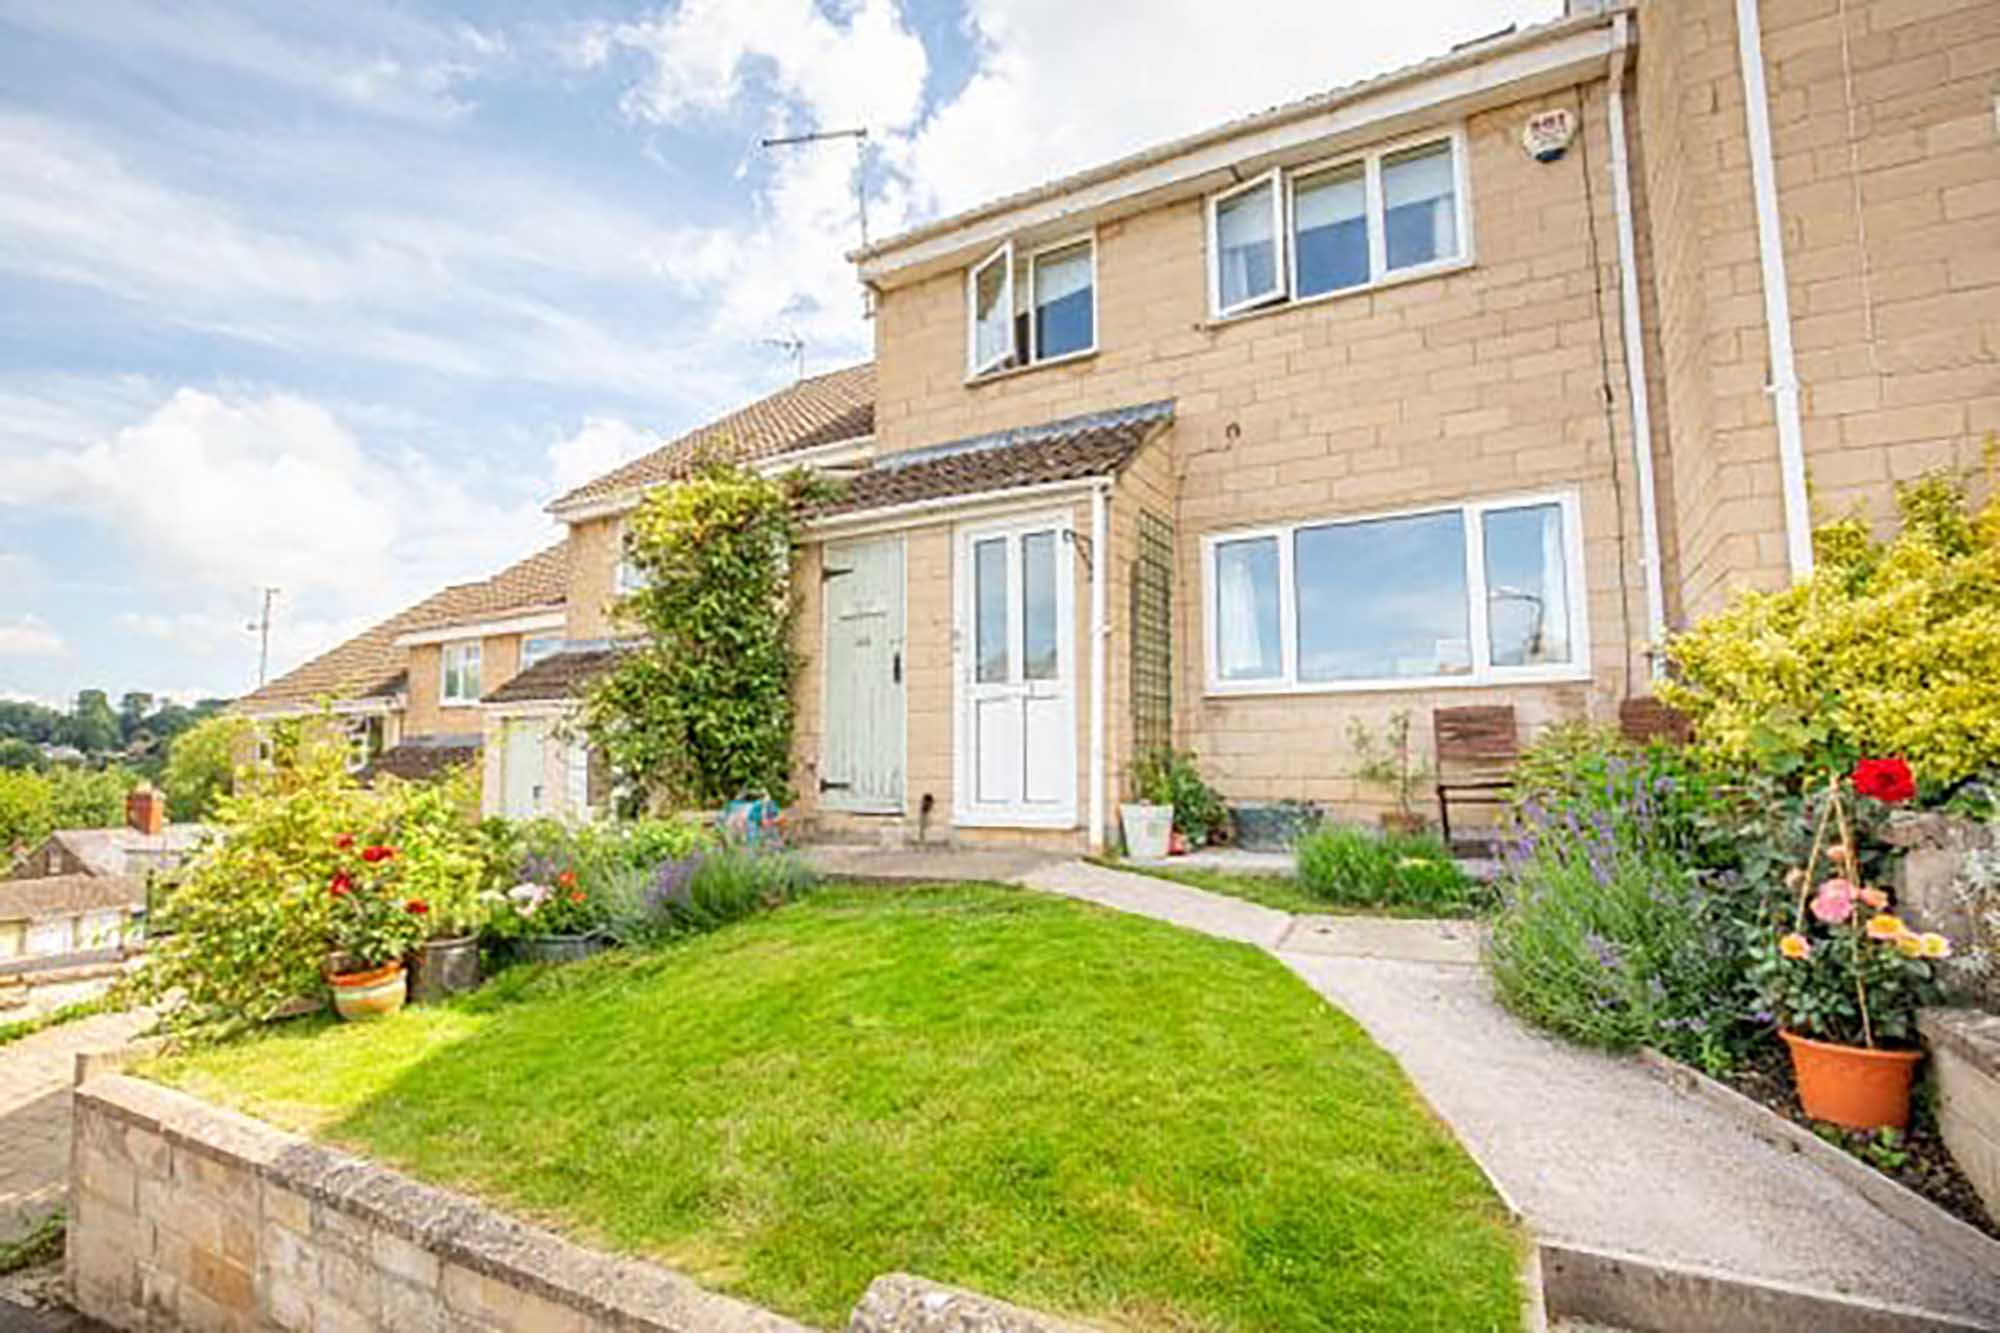 Spacious 4 bedroom family home with studio